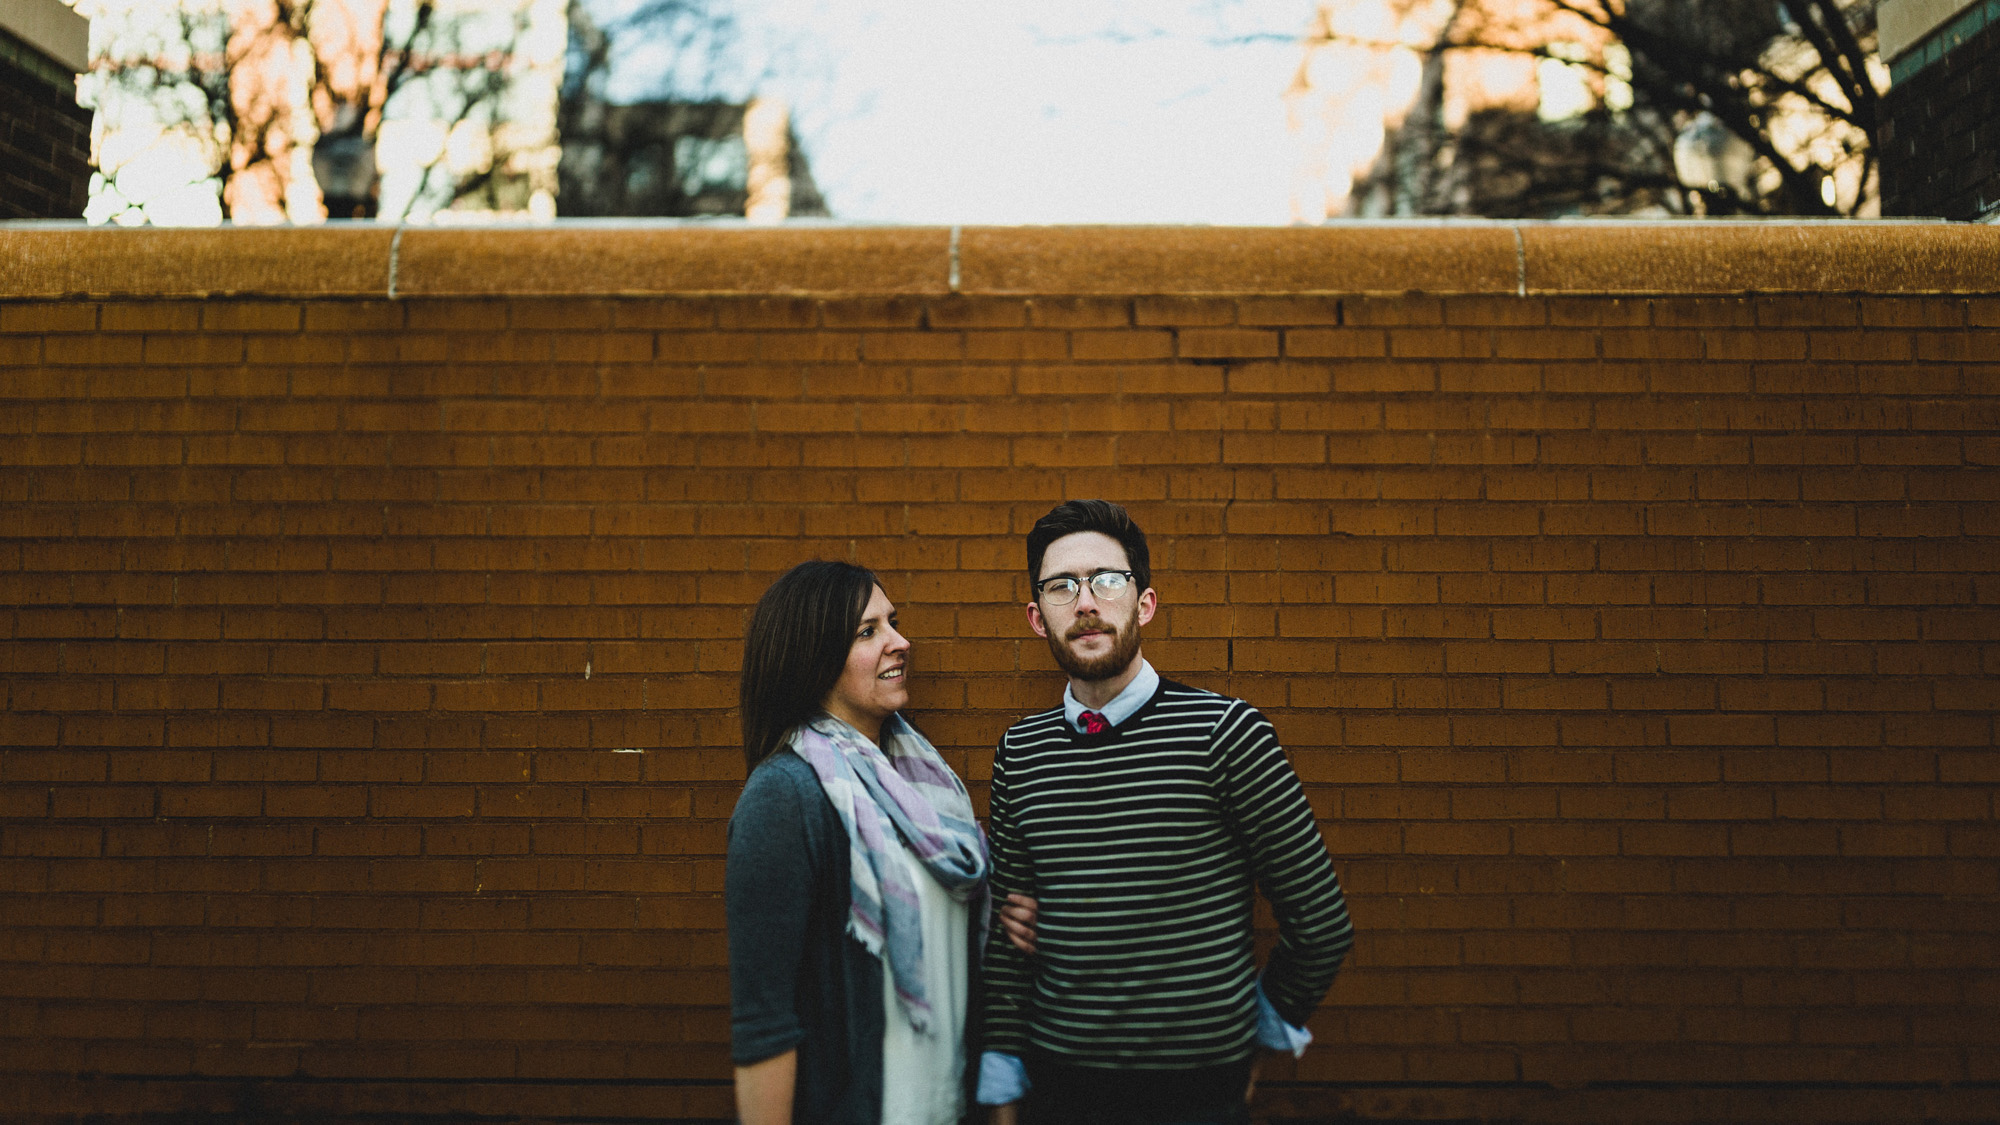 alec_vanderboom_drambour_Kansas_City_Engagement_Session-0012.jpg